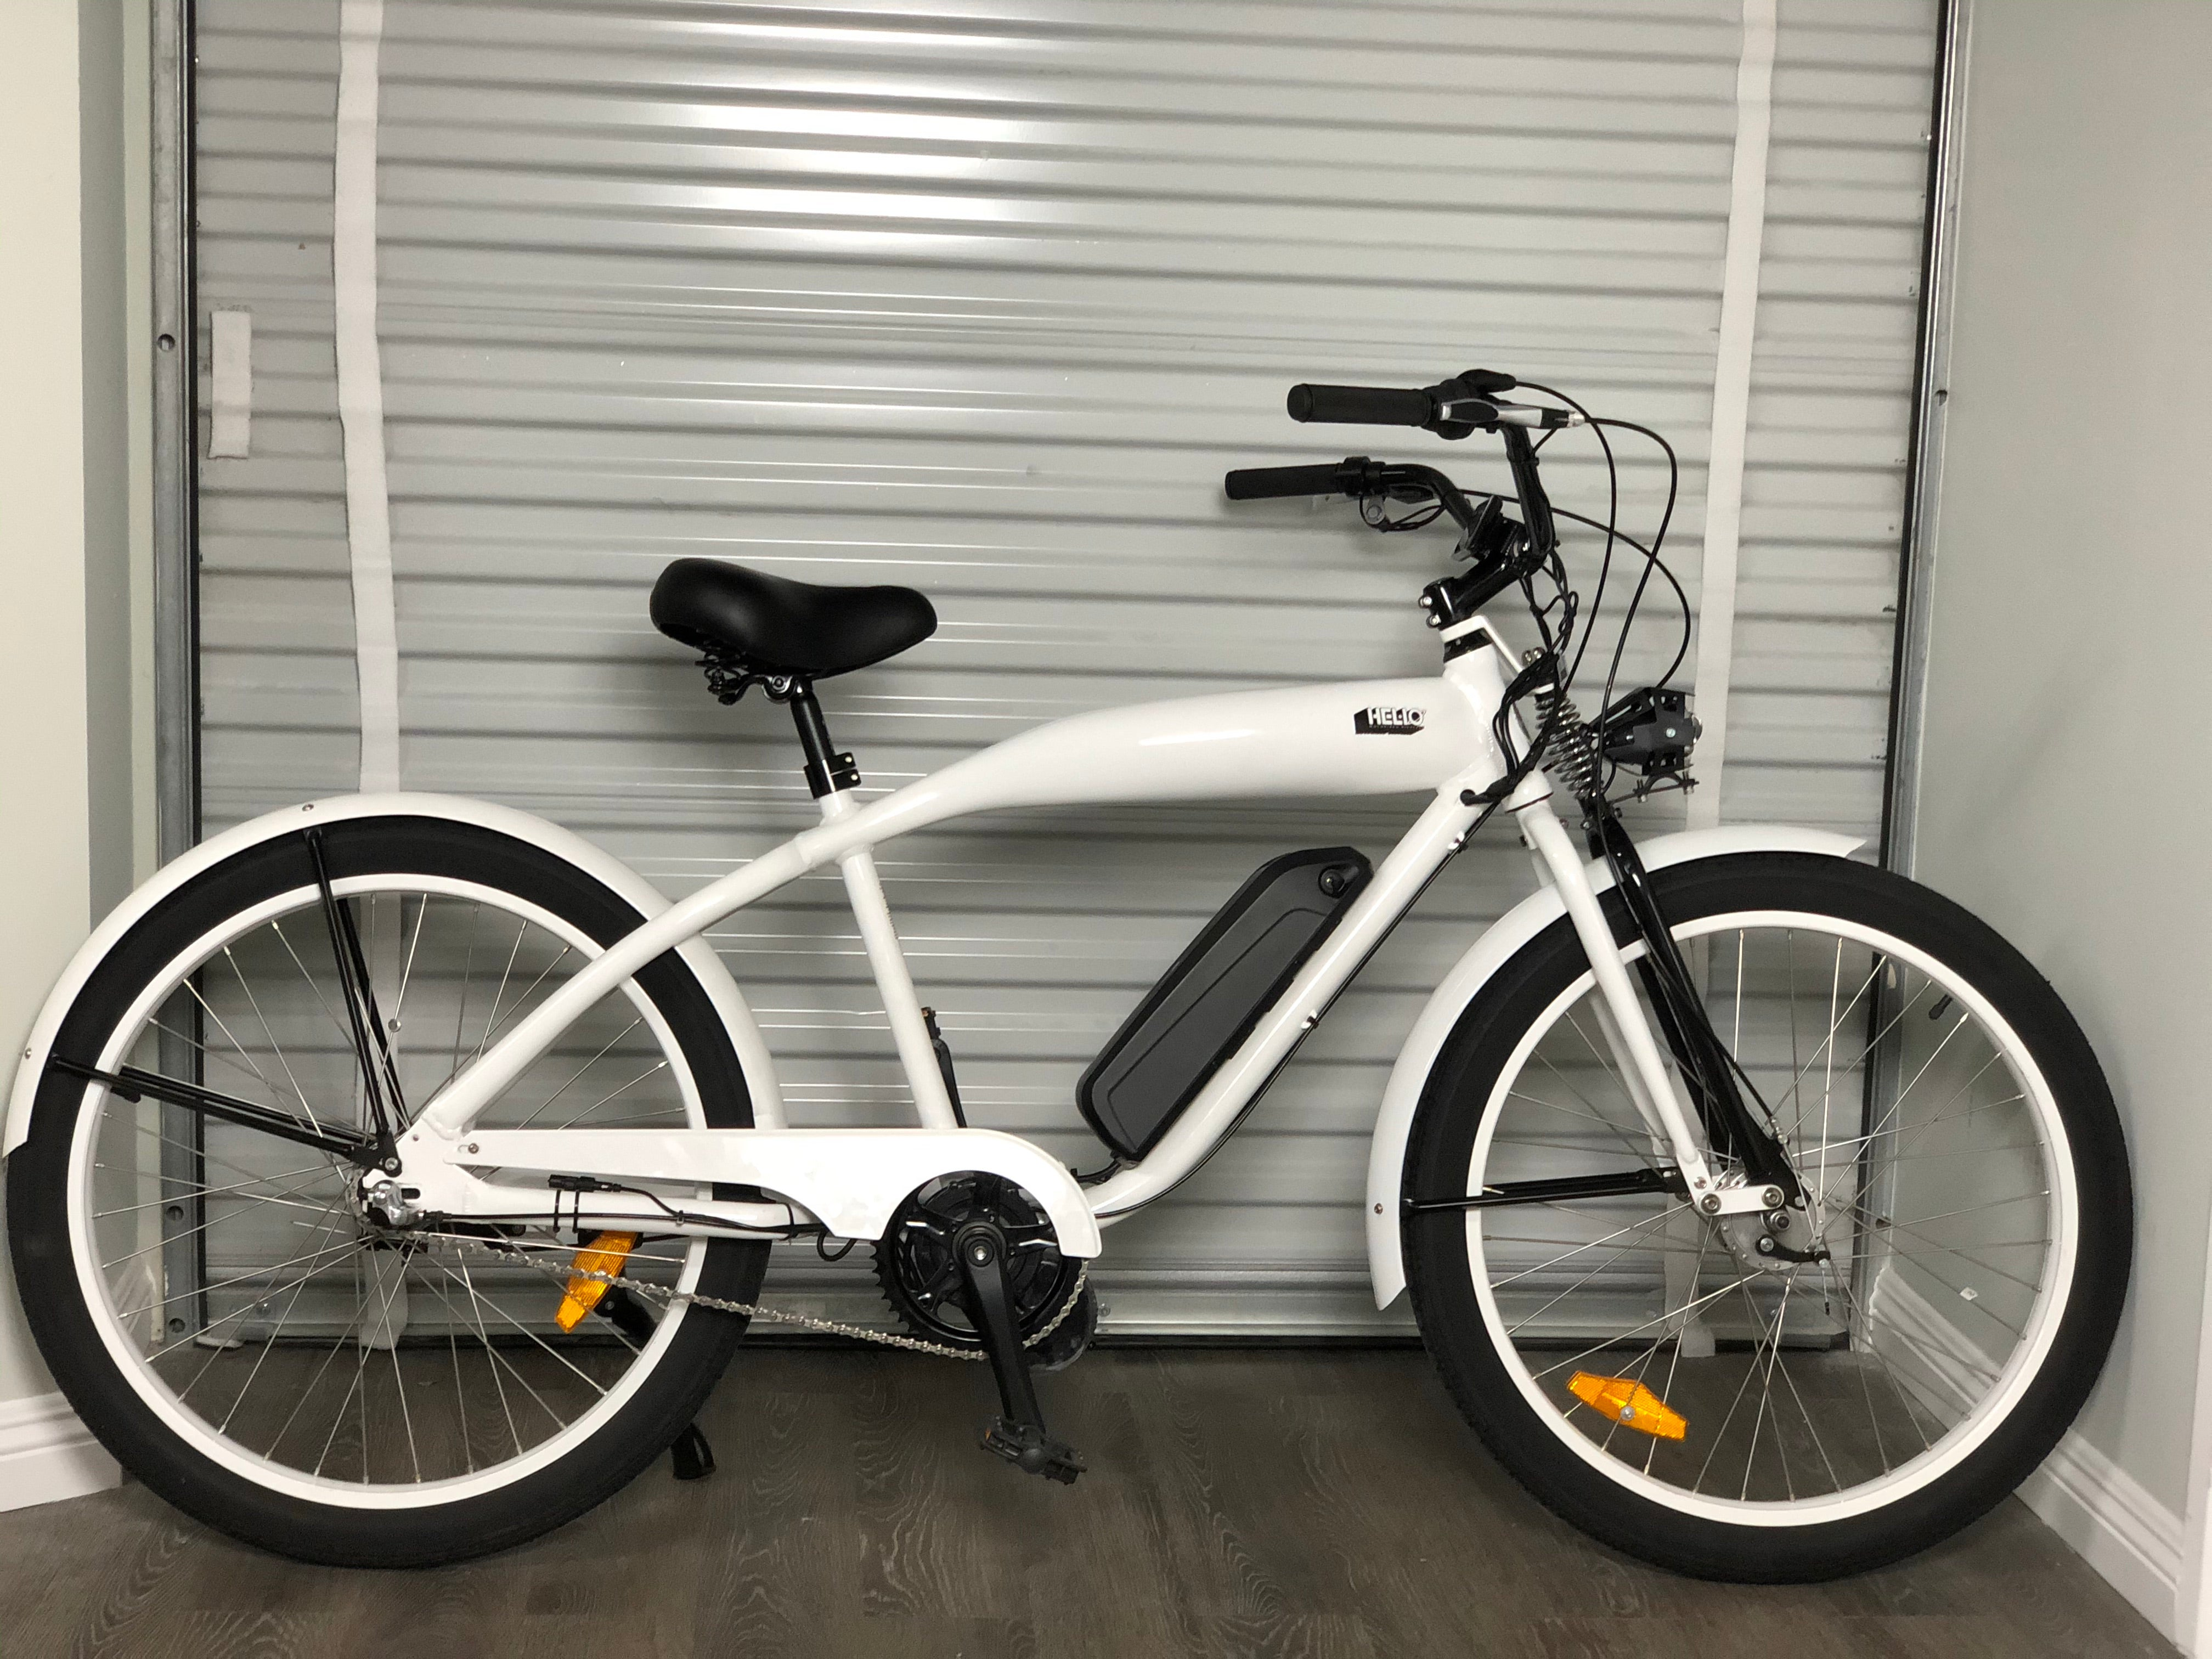 Helio / Phantom Mens Electric Bicycle Available Now